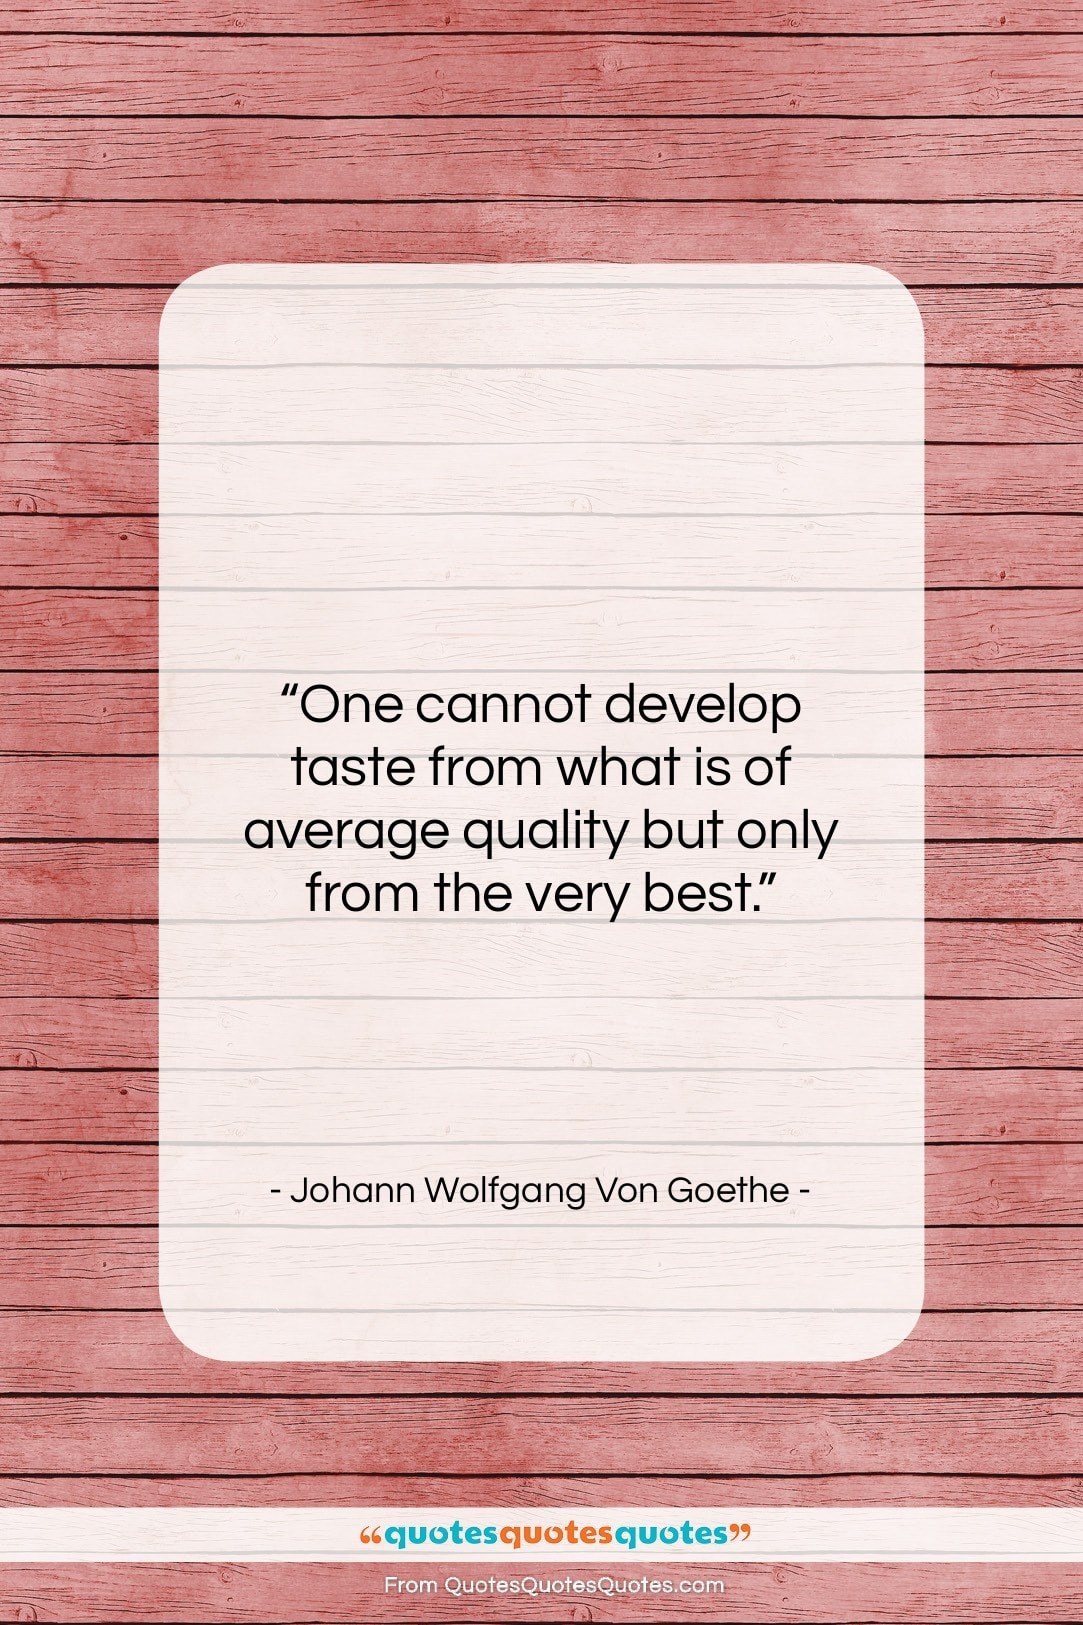 """Johann Wolfgang Von Goethe quote: """"One cannot develop taste from what is…""""- at QuotesQuotesQuotes.com"""